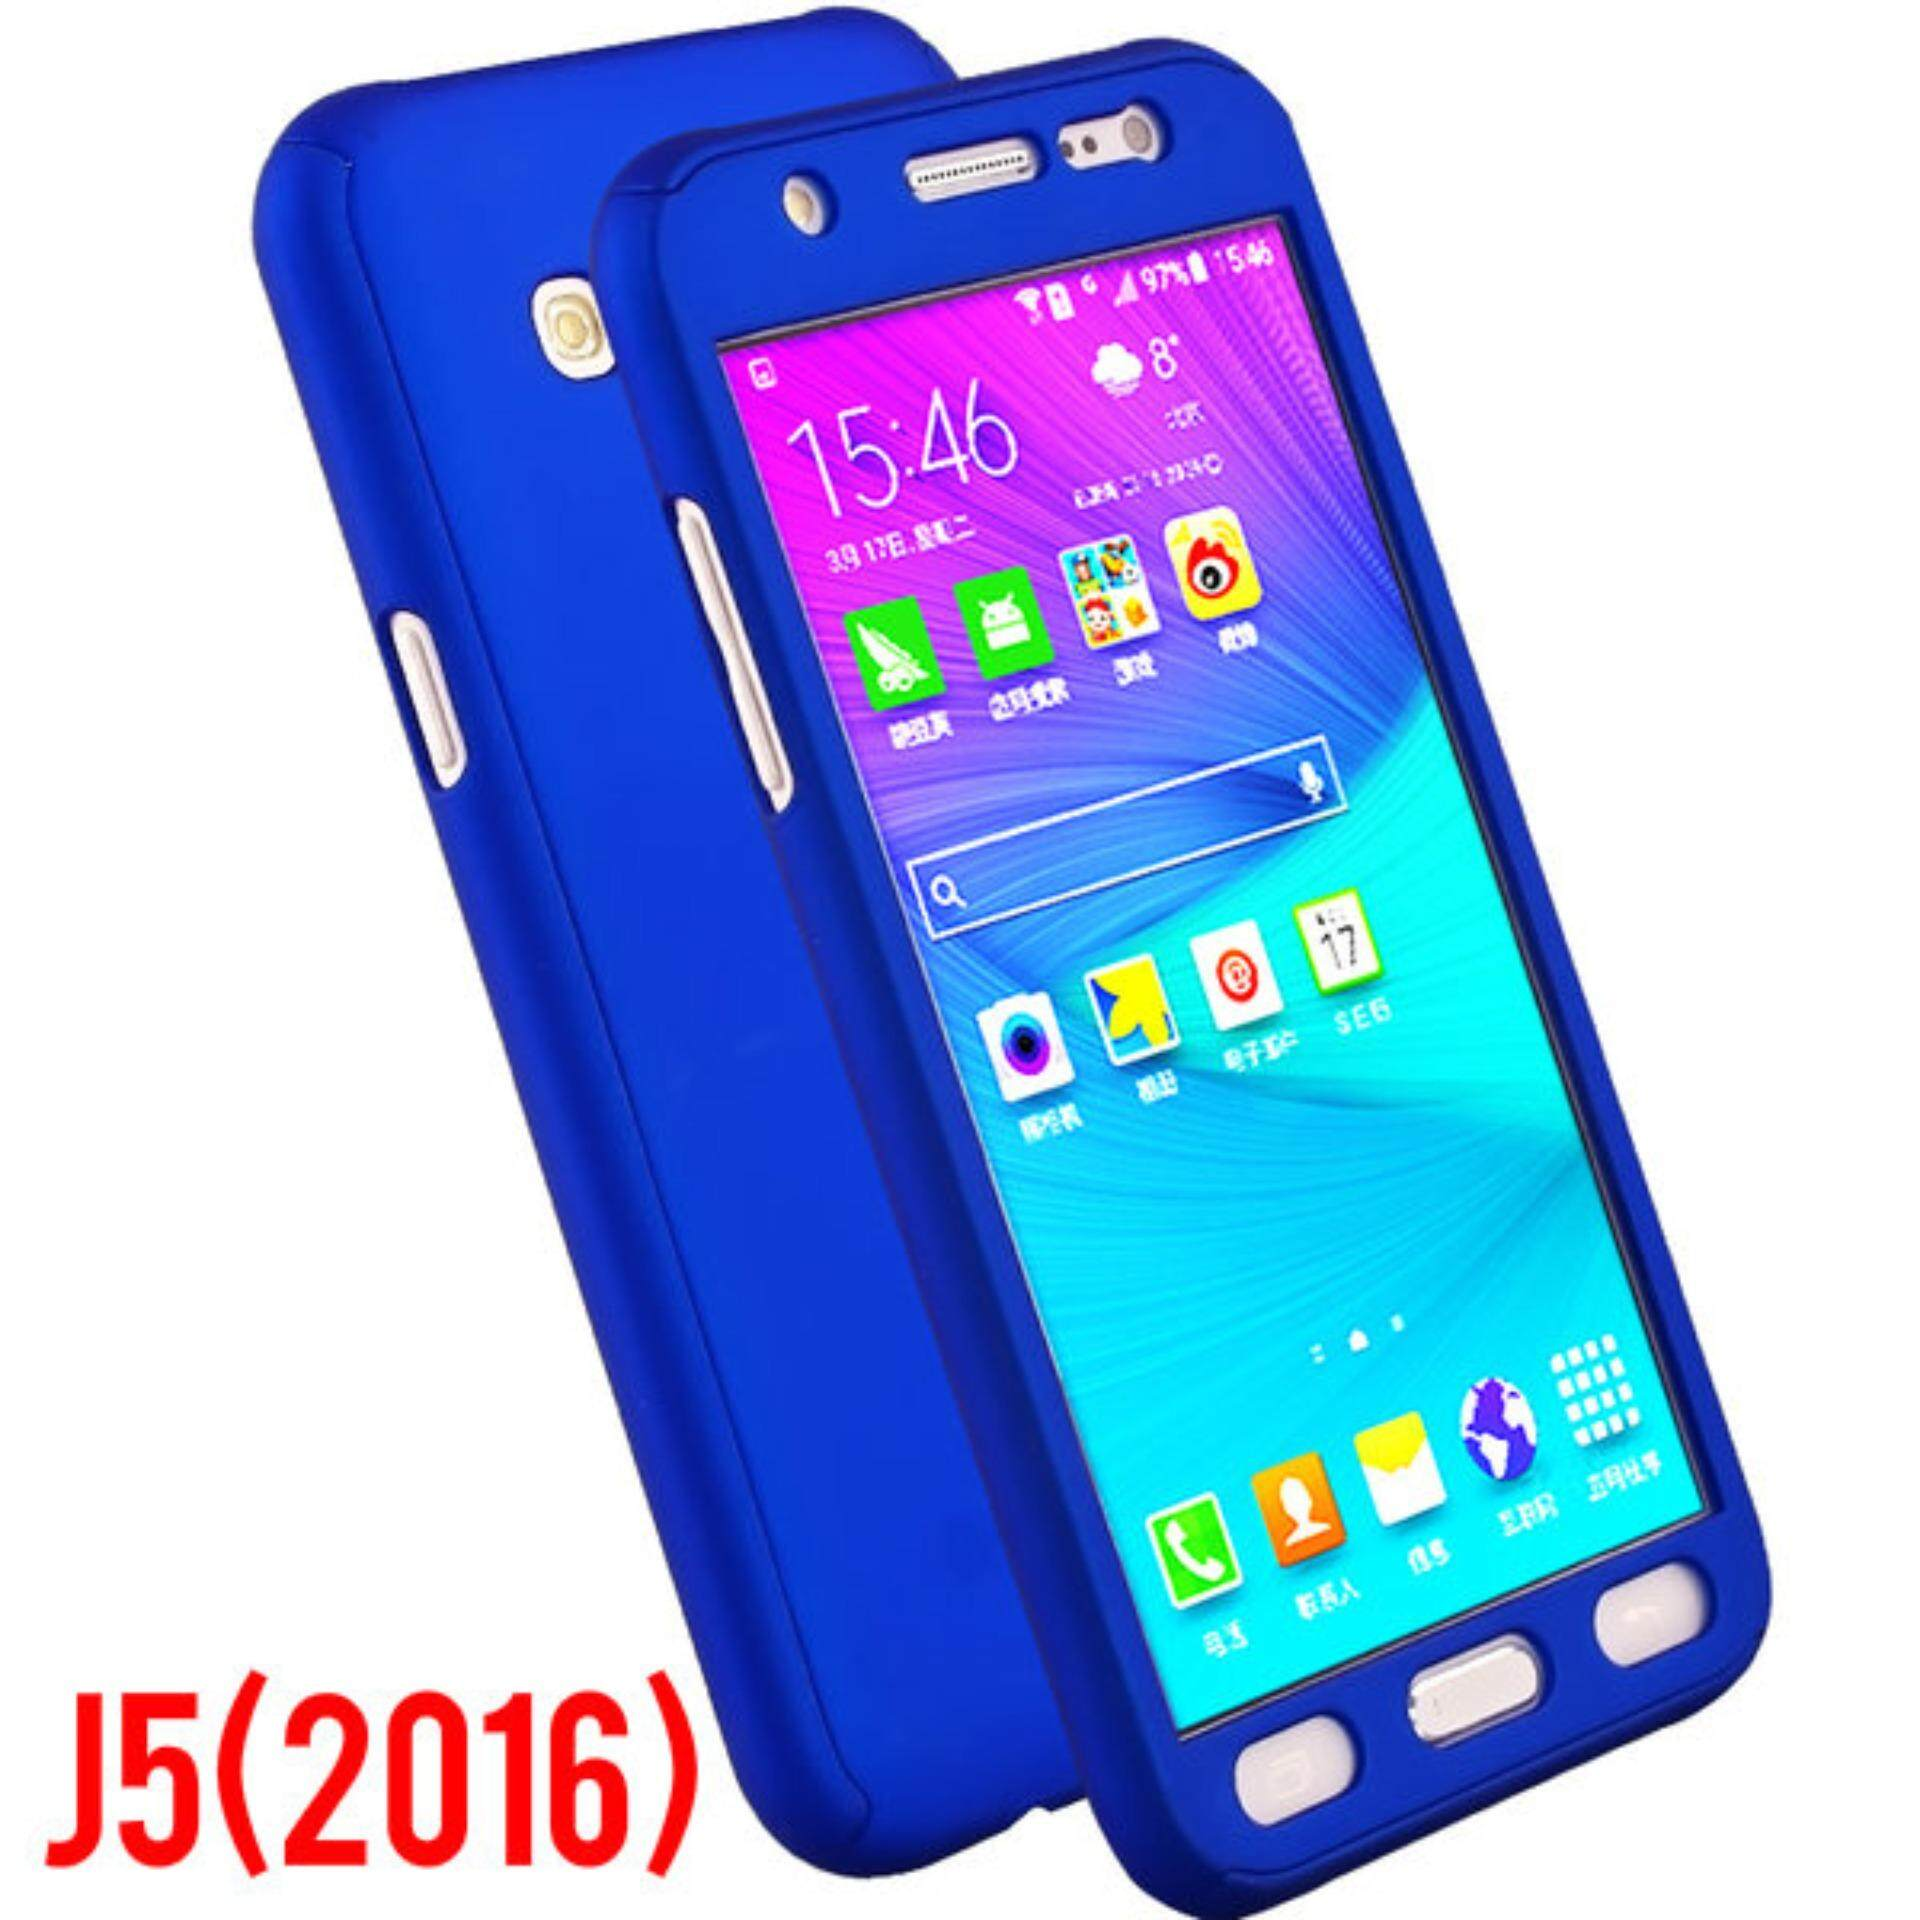 Samsung J5 (2016) 360 Degree Shock Proof / Drop Resistant Protection PC Phone Case